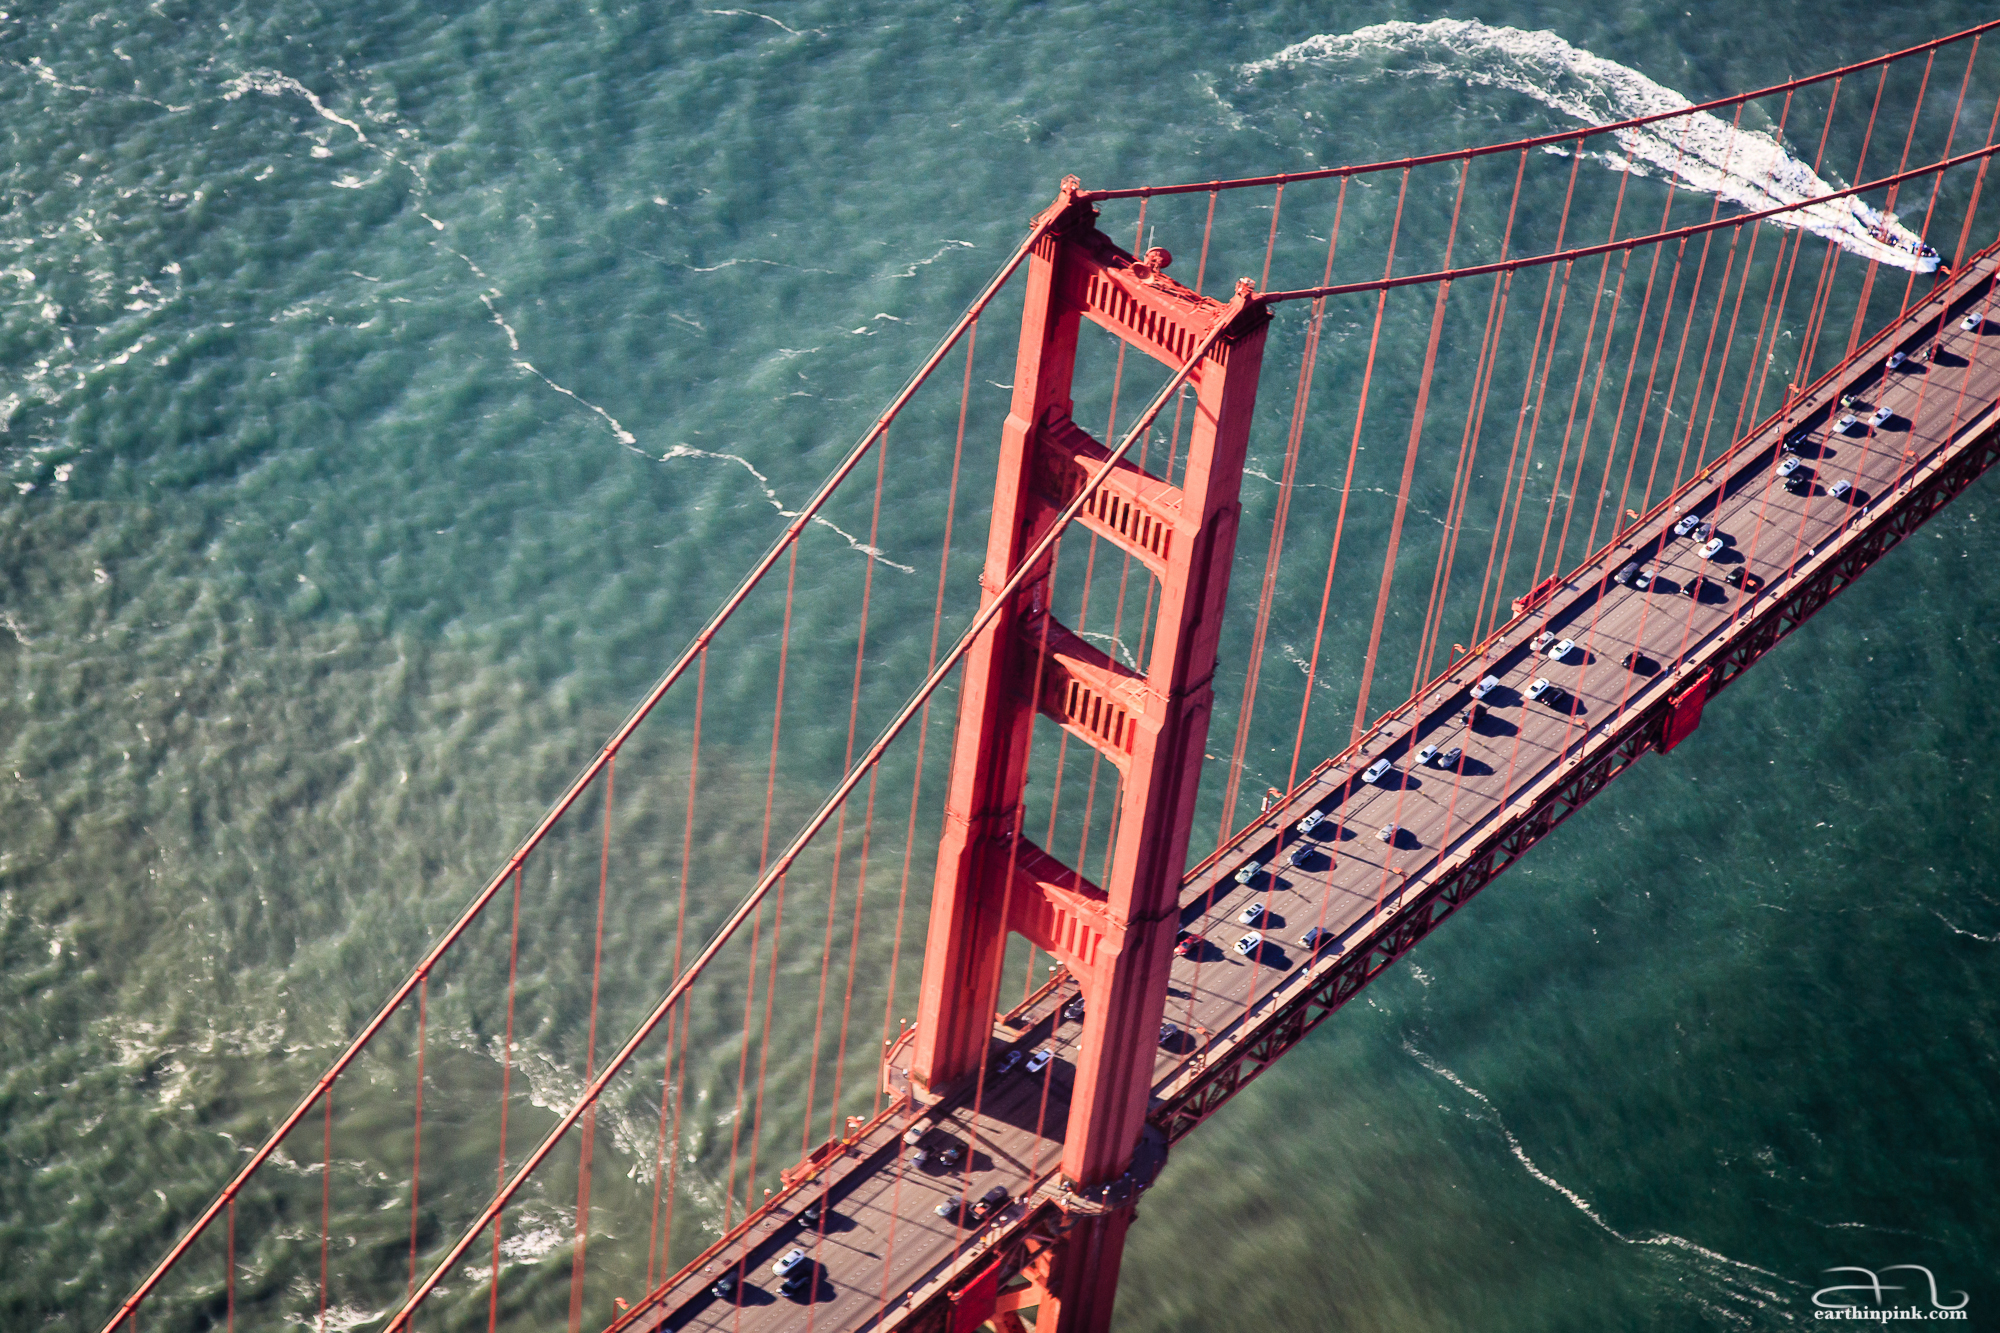 Looking down on the Golden Gate bridge in the late afternoon light.